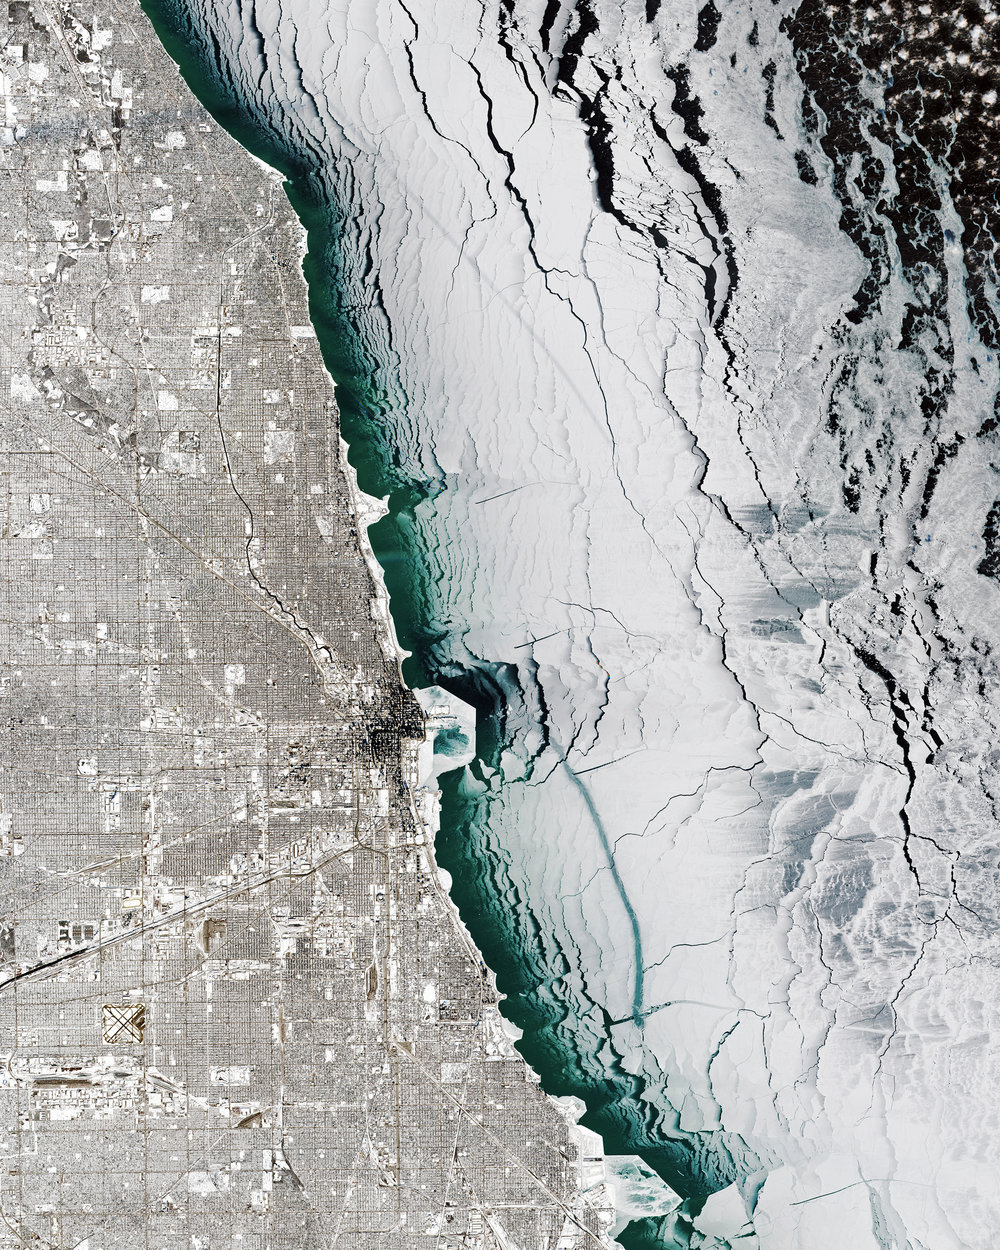 "Check out this amazing Overview of Chicago, Illinois, and Lake Michigan during last week's polar vortex. Captured Thursday by the European Space Agency's Sentinel-2 satellite, it shows the entire city covered in snow with massive chunks of lake ice floating offshore. Chicago finished off the month of January with 13 consecutive days of snow and some of its coldest temperatures in more than three decades.  41°50'13.0""N, 87°41'05.0""W  Source imagery: ESA - European Space Agency via Descartes Labs"